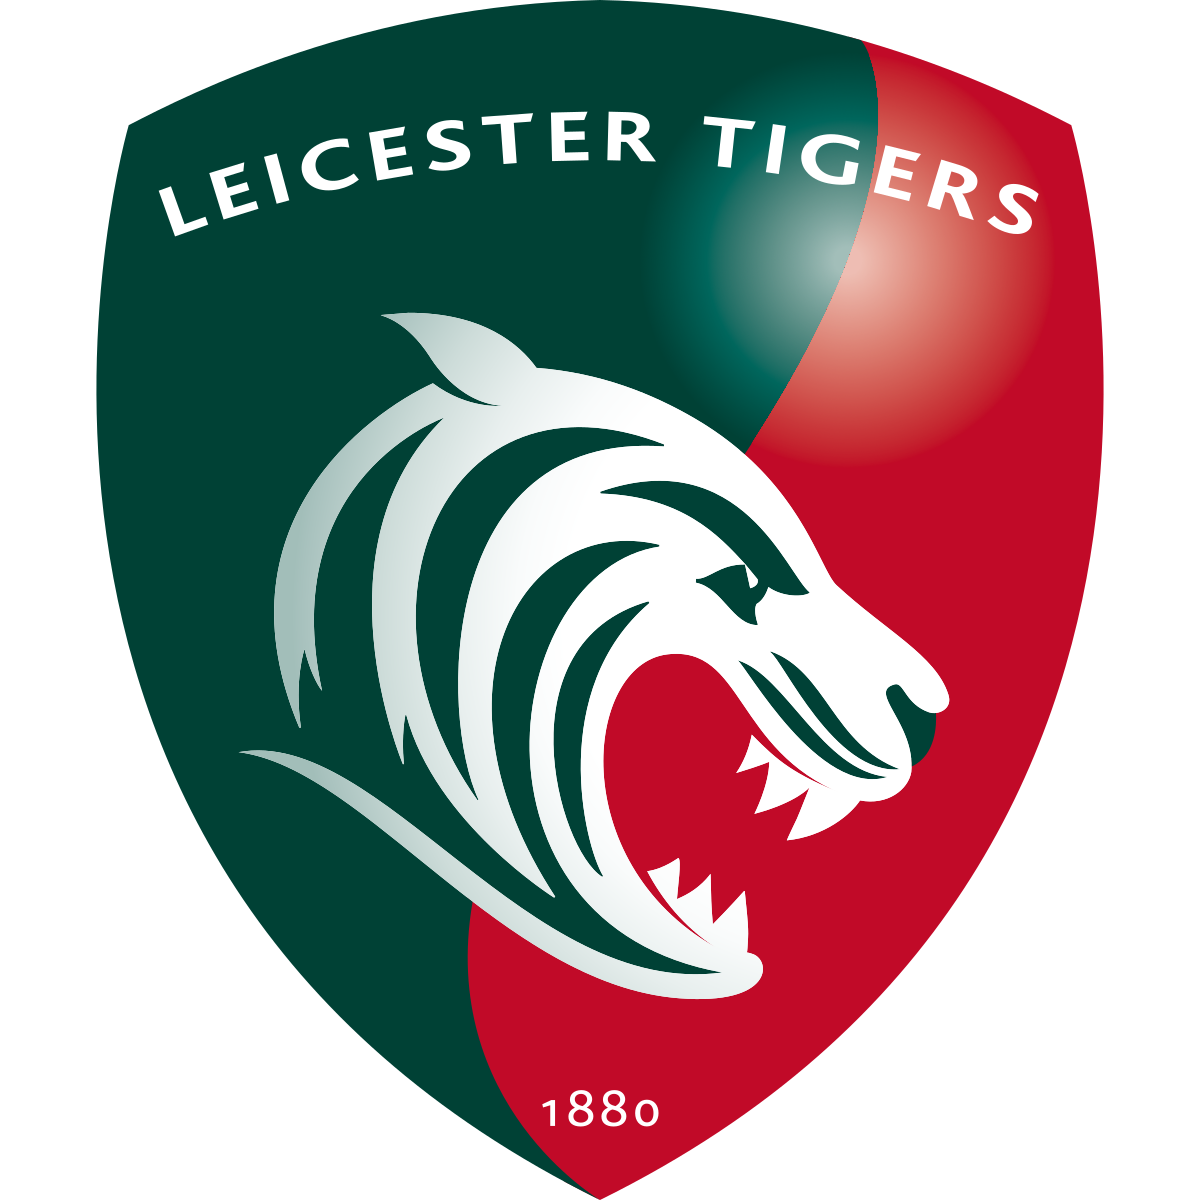 Wasps vs Leicester Tigers